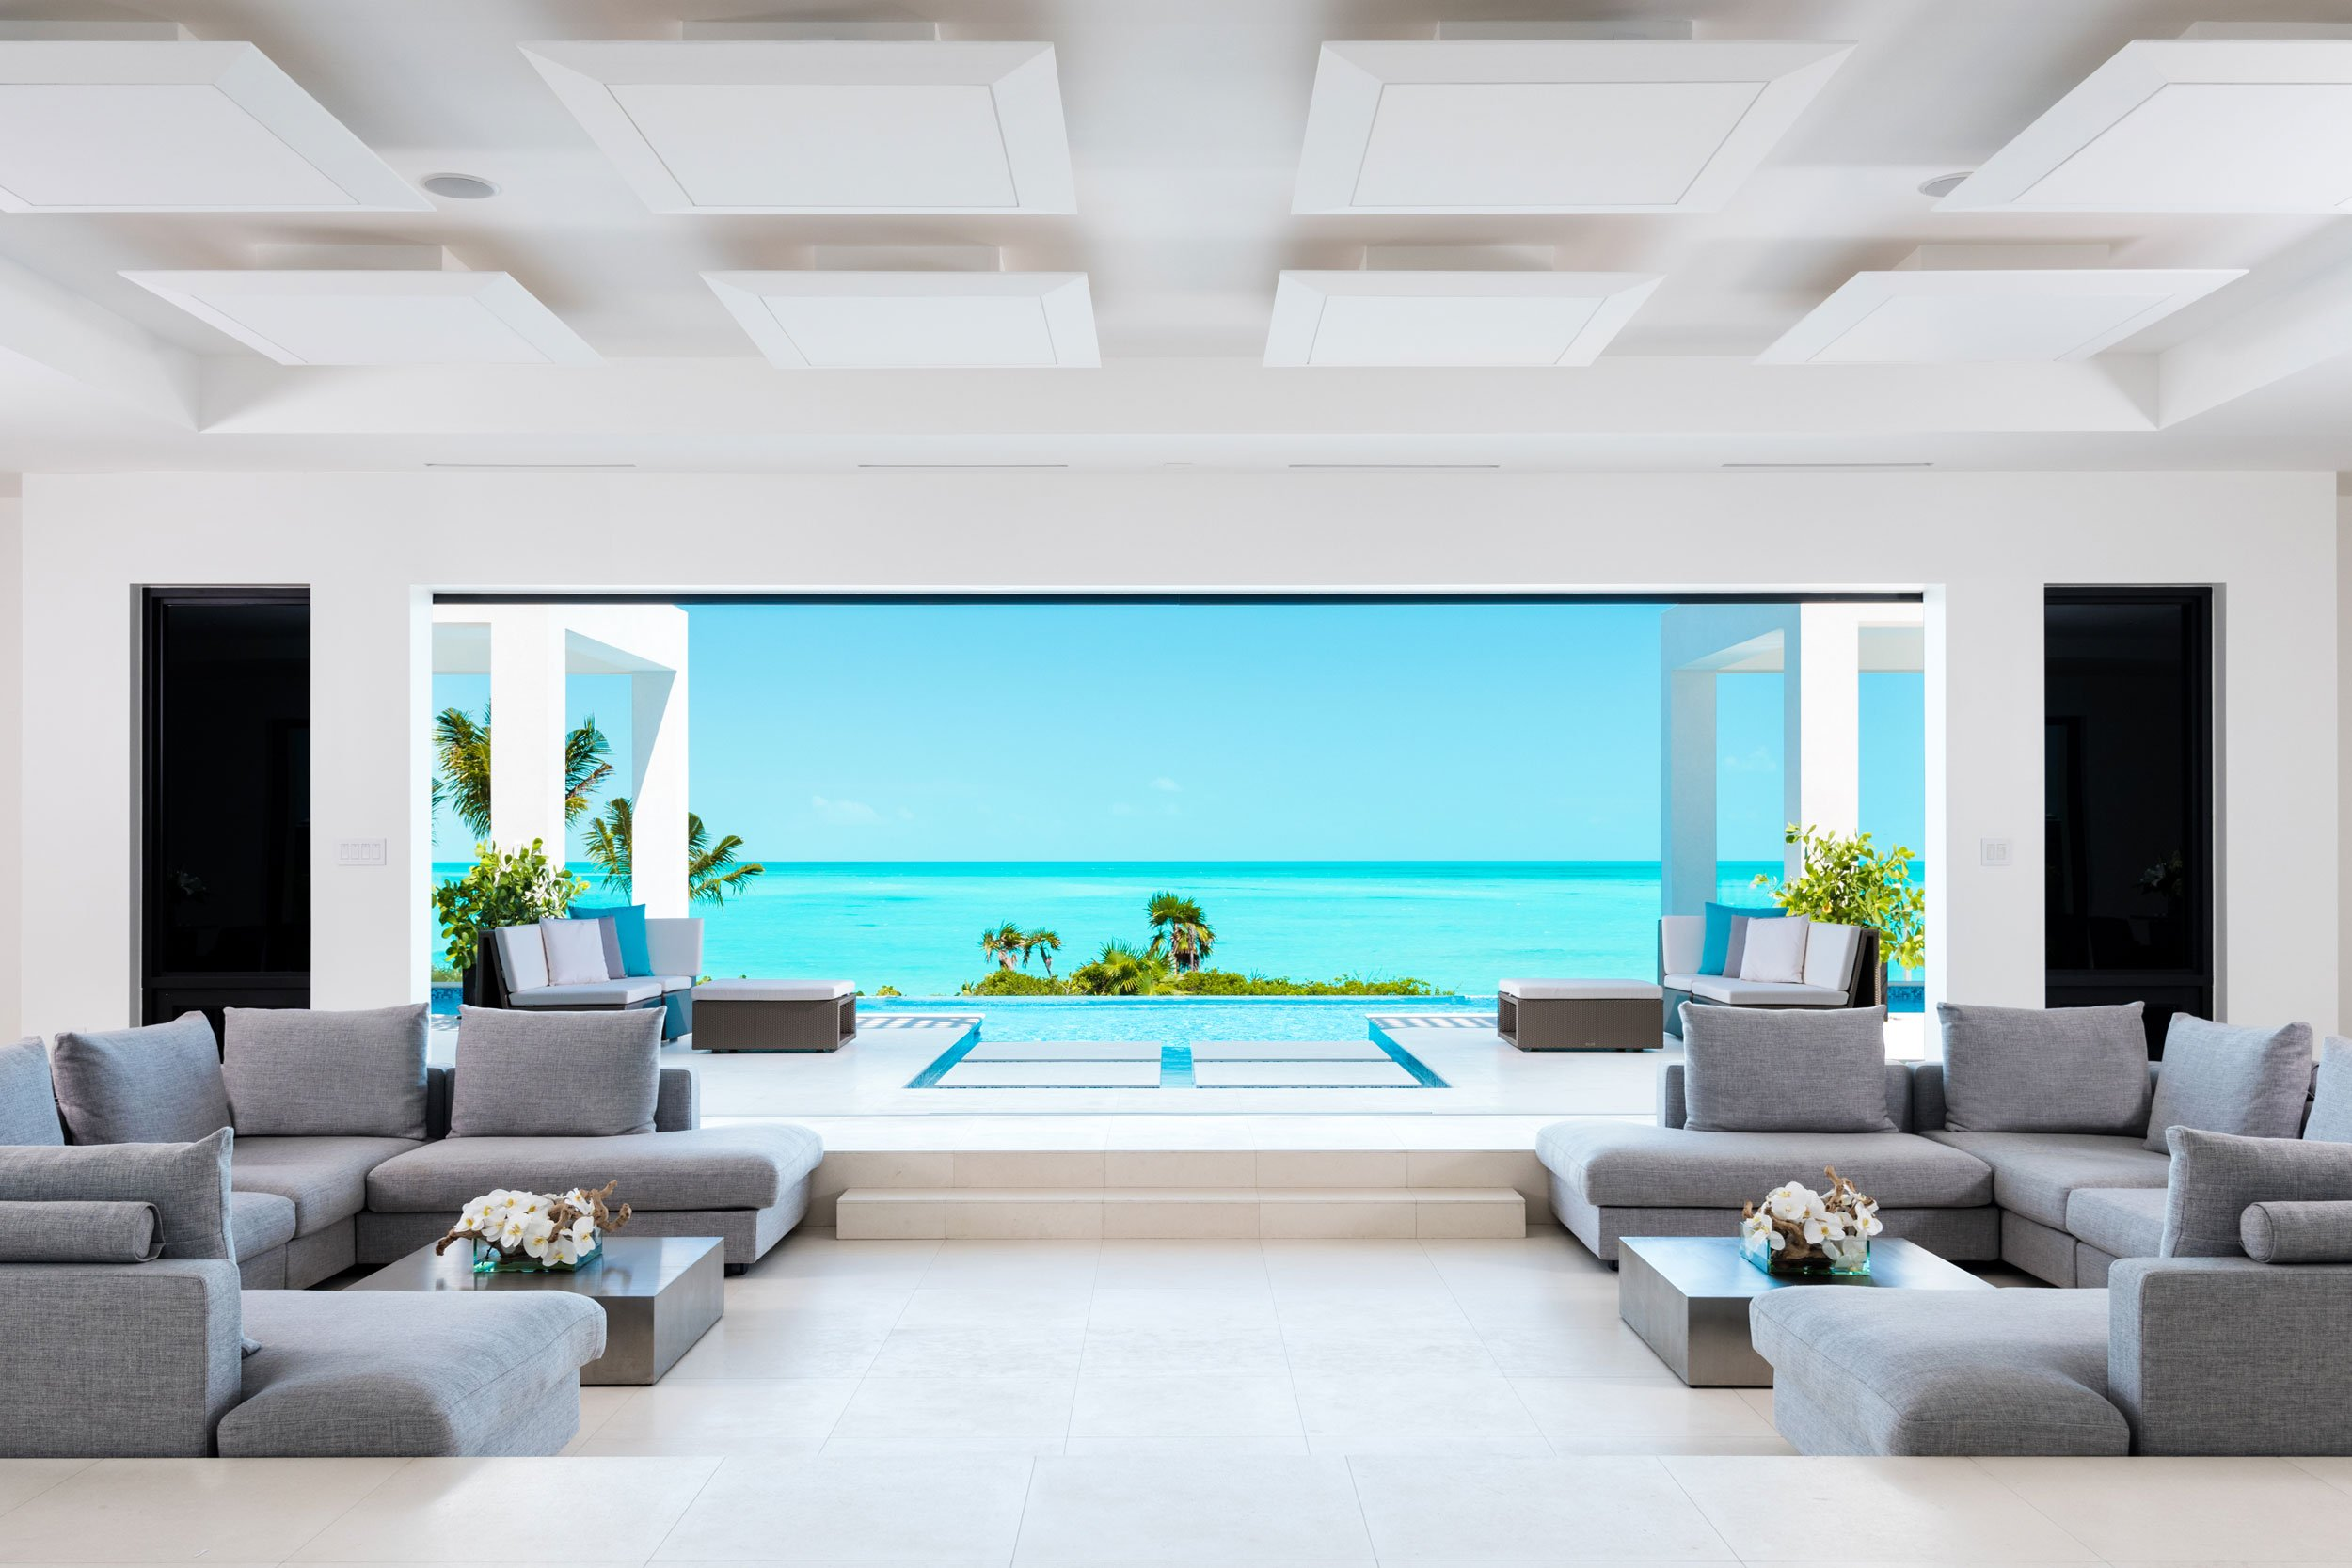 Triton Villa is a newly constructed dream home, designed to showcase unfettered views of the world-famous turquoise waters of the Turks and Caicos Islands.